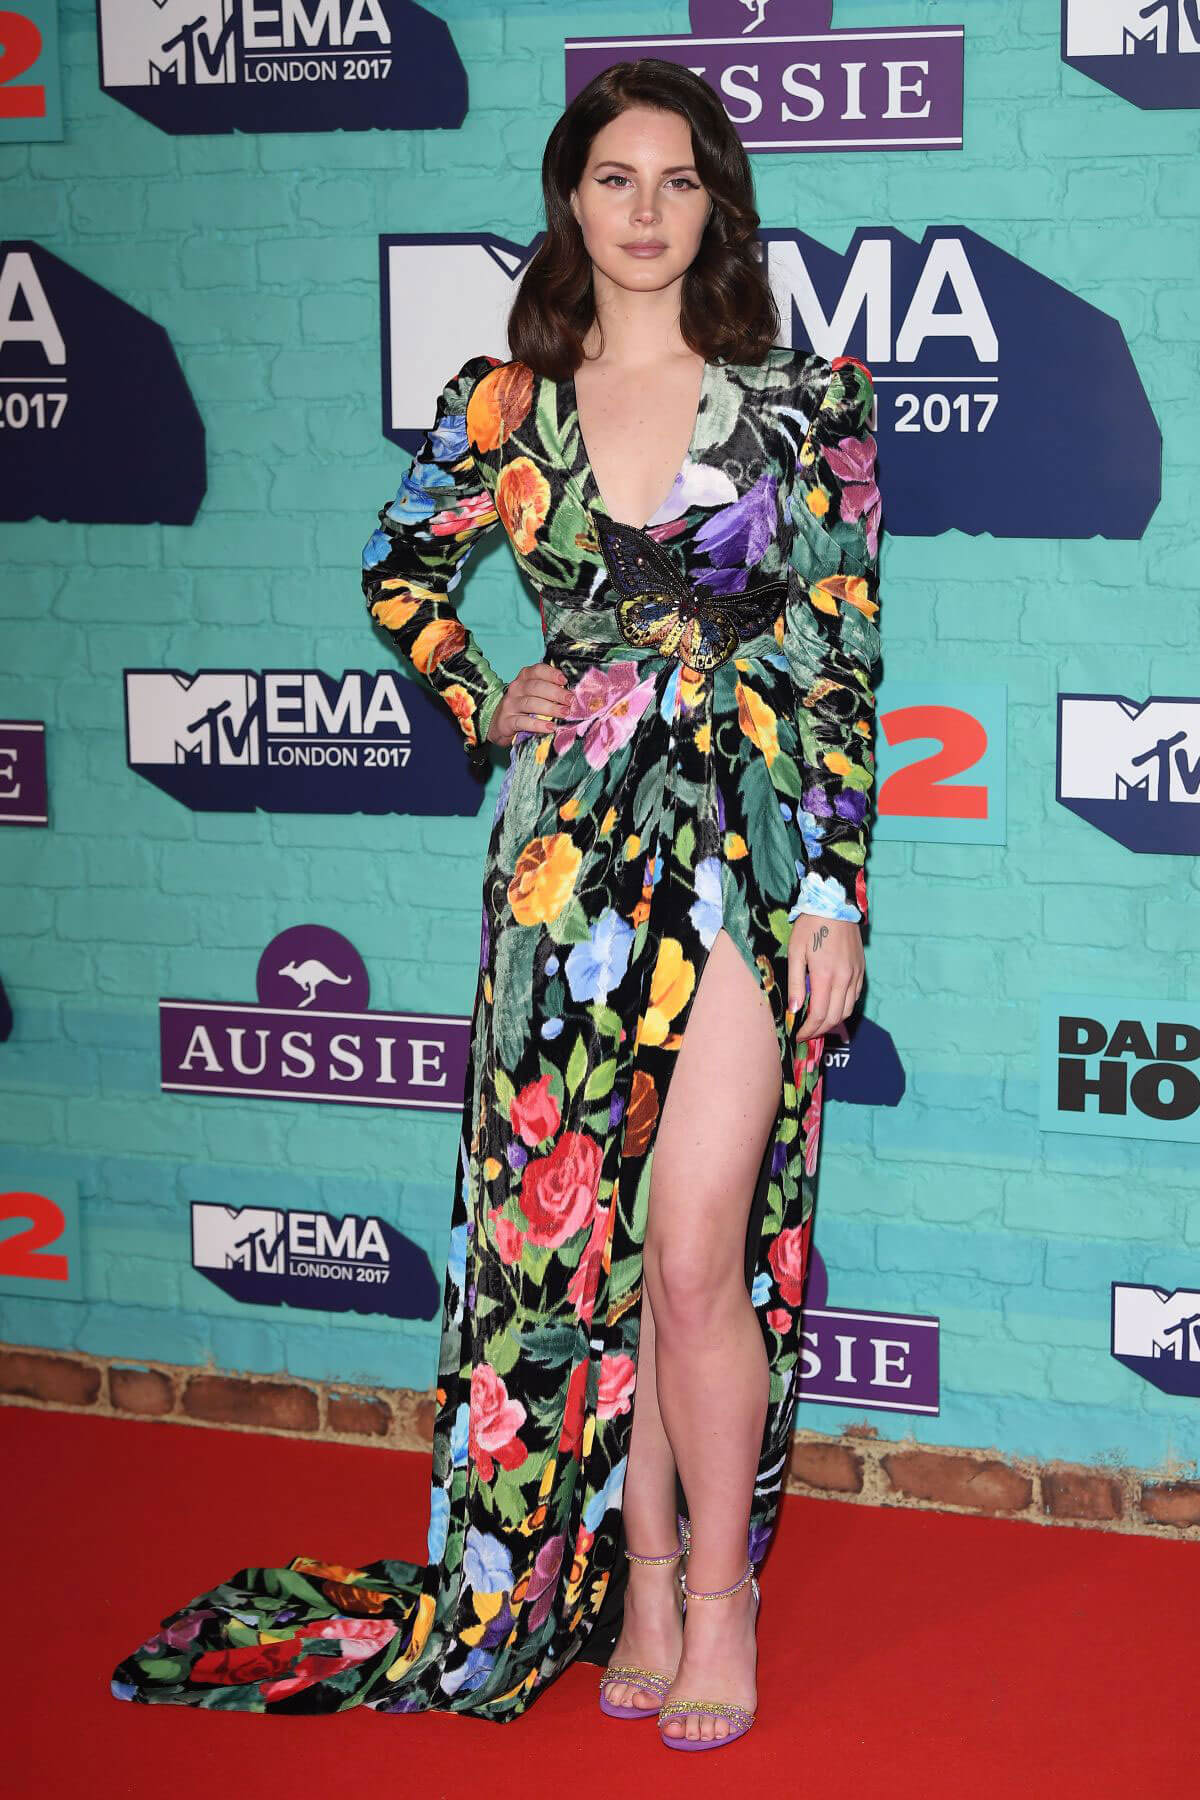 Lana Del Rey Stills at 2017 MTV Europe Music Awards in London